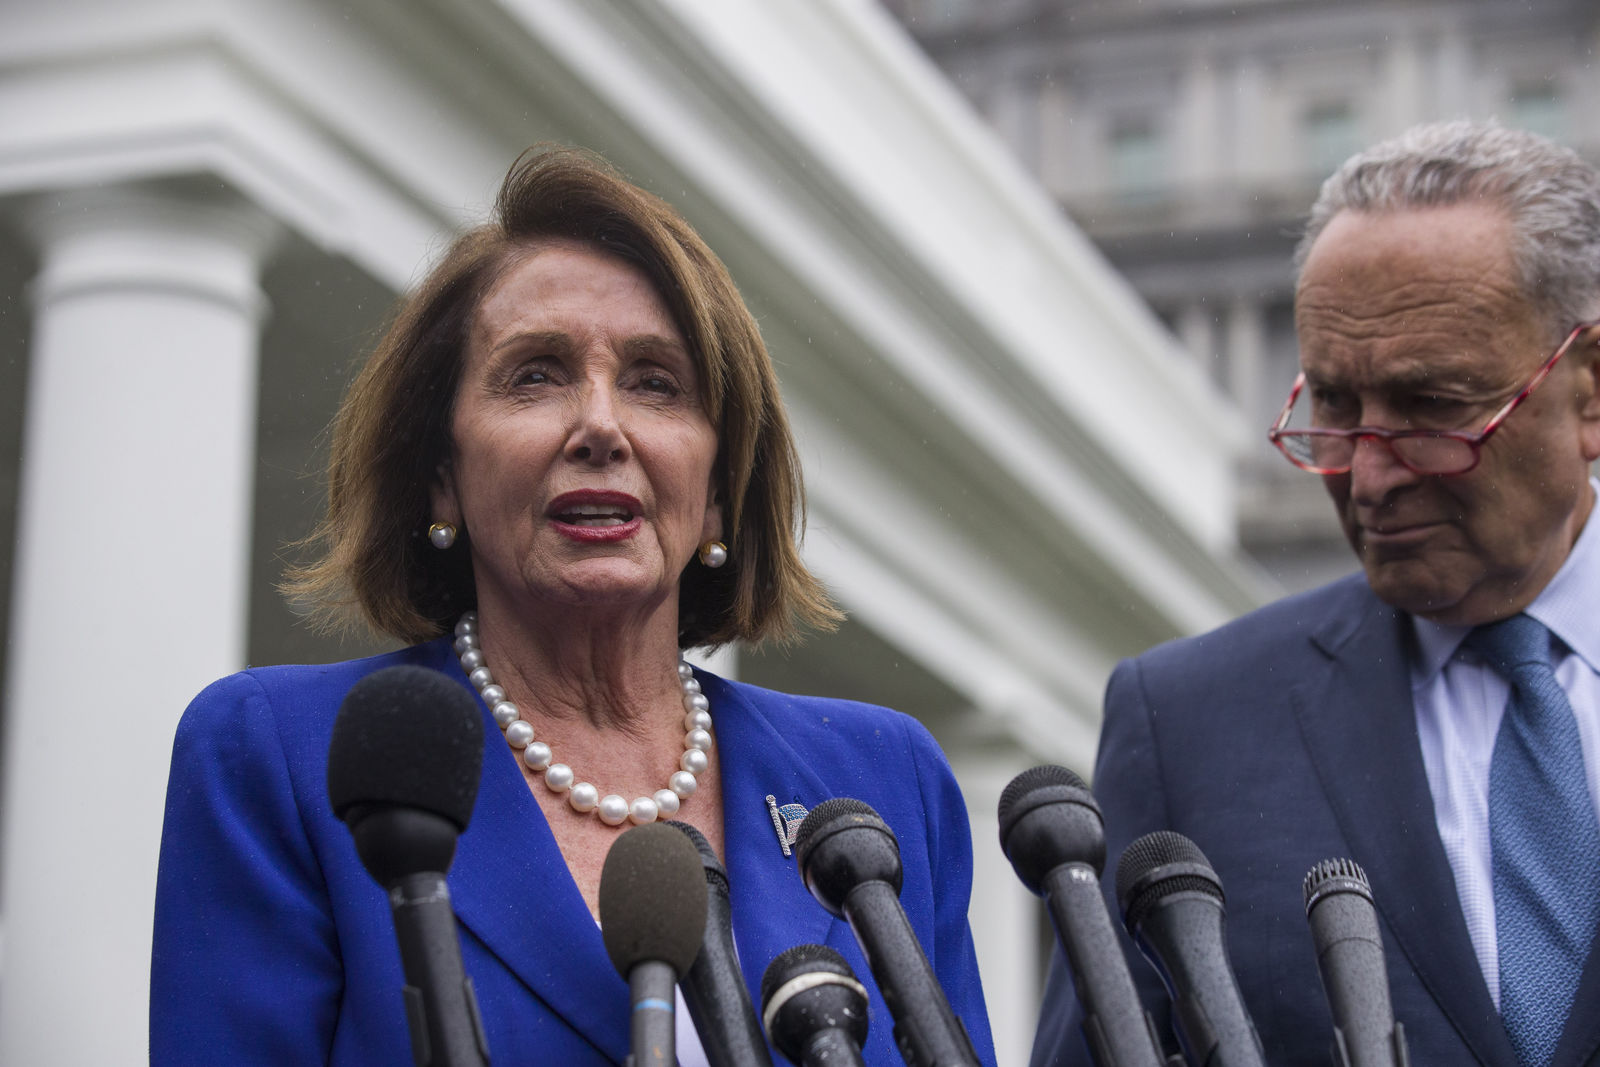 House Speaker Nancy Pelosi of Calif., left, and Senate Minority Leader Chuck Schumer of N.Y., speak with reporters after a meeting with President Donald Trump at the White House, Wednesday, Oct. 16, 2019, in Washington. (AP Photo/Alex Brandon)